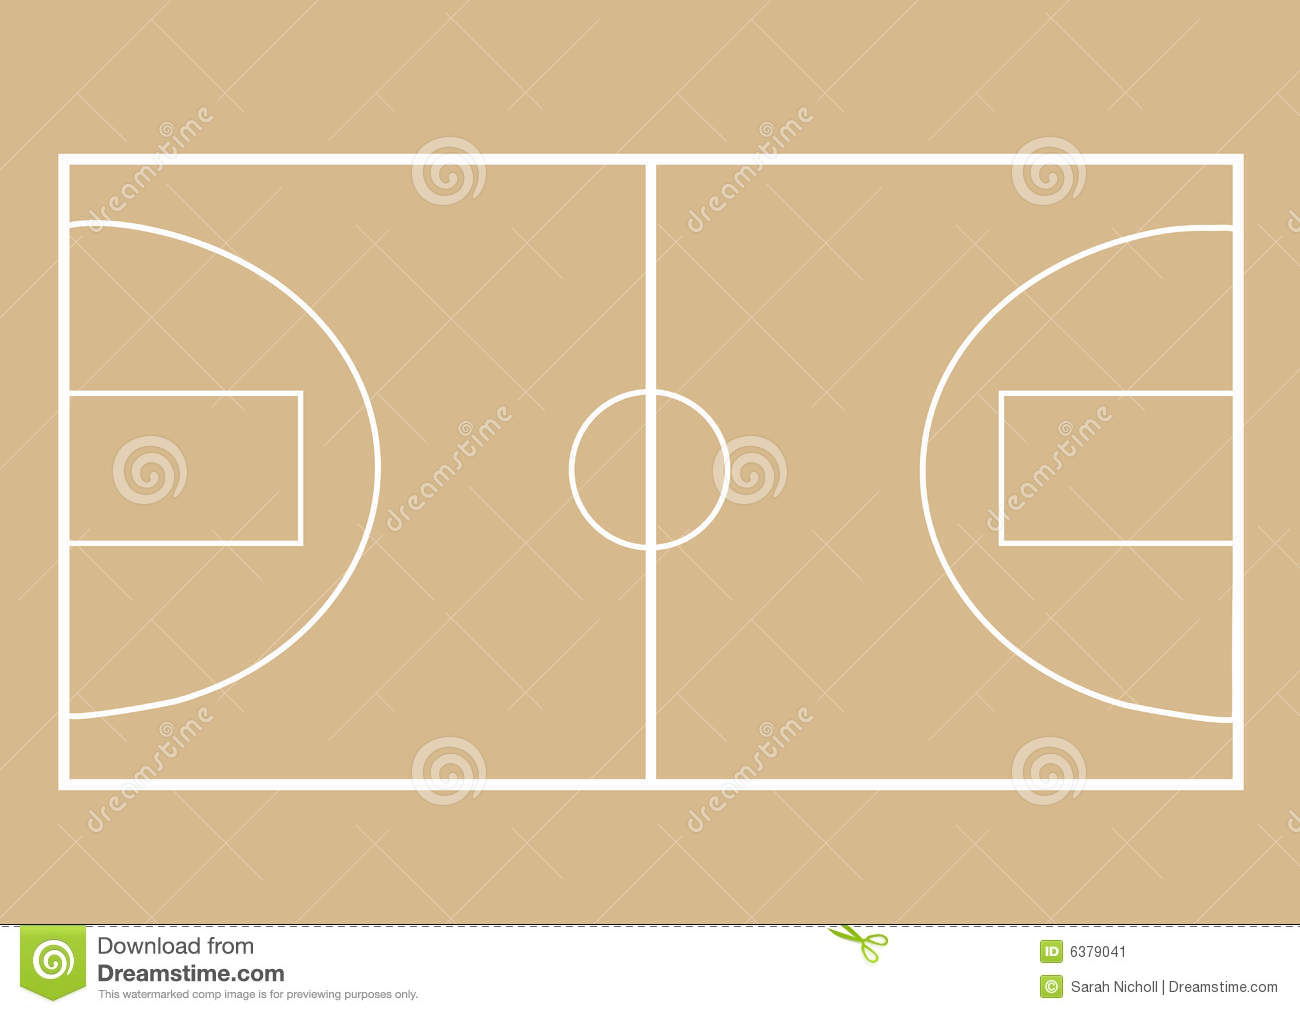 Illustration Of Basketball Court Background Mr No Pr No 2 3698 3